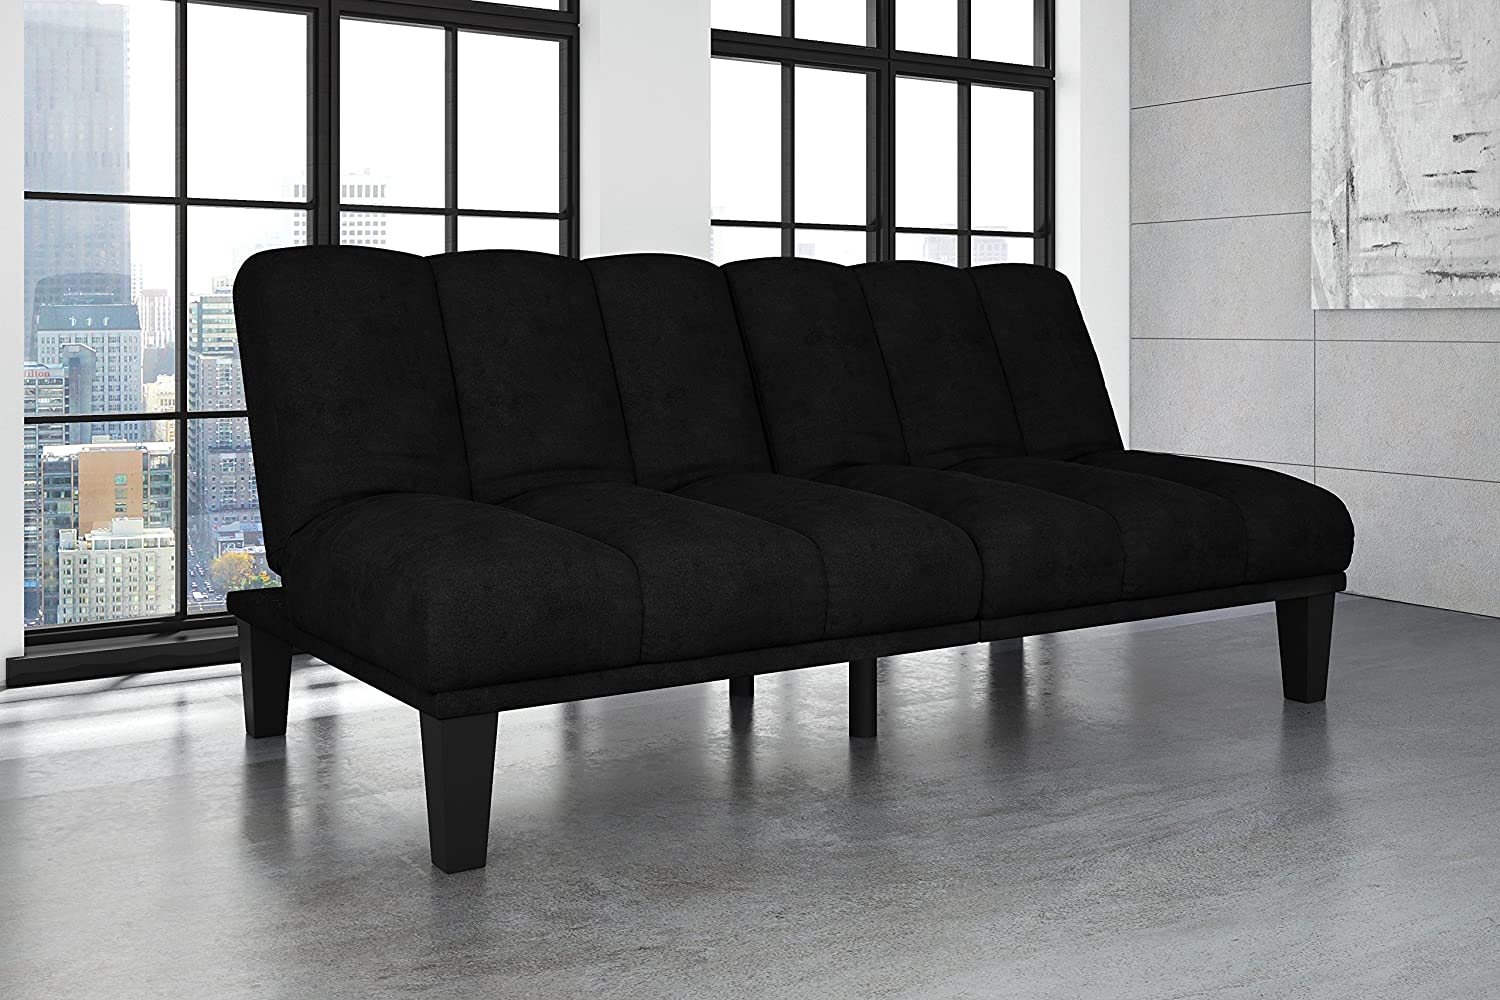 Hamilton Estate Premium Sofa Futon Sleeper - Rich Black Comfortable Plush Upholstery - Sturdy Wood Construction - Modern